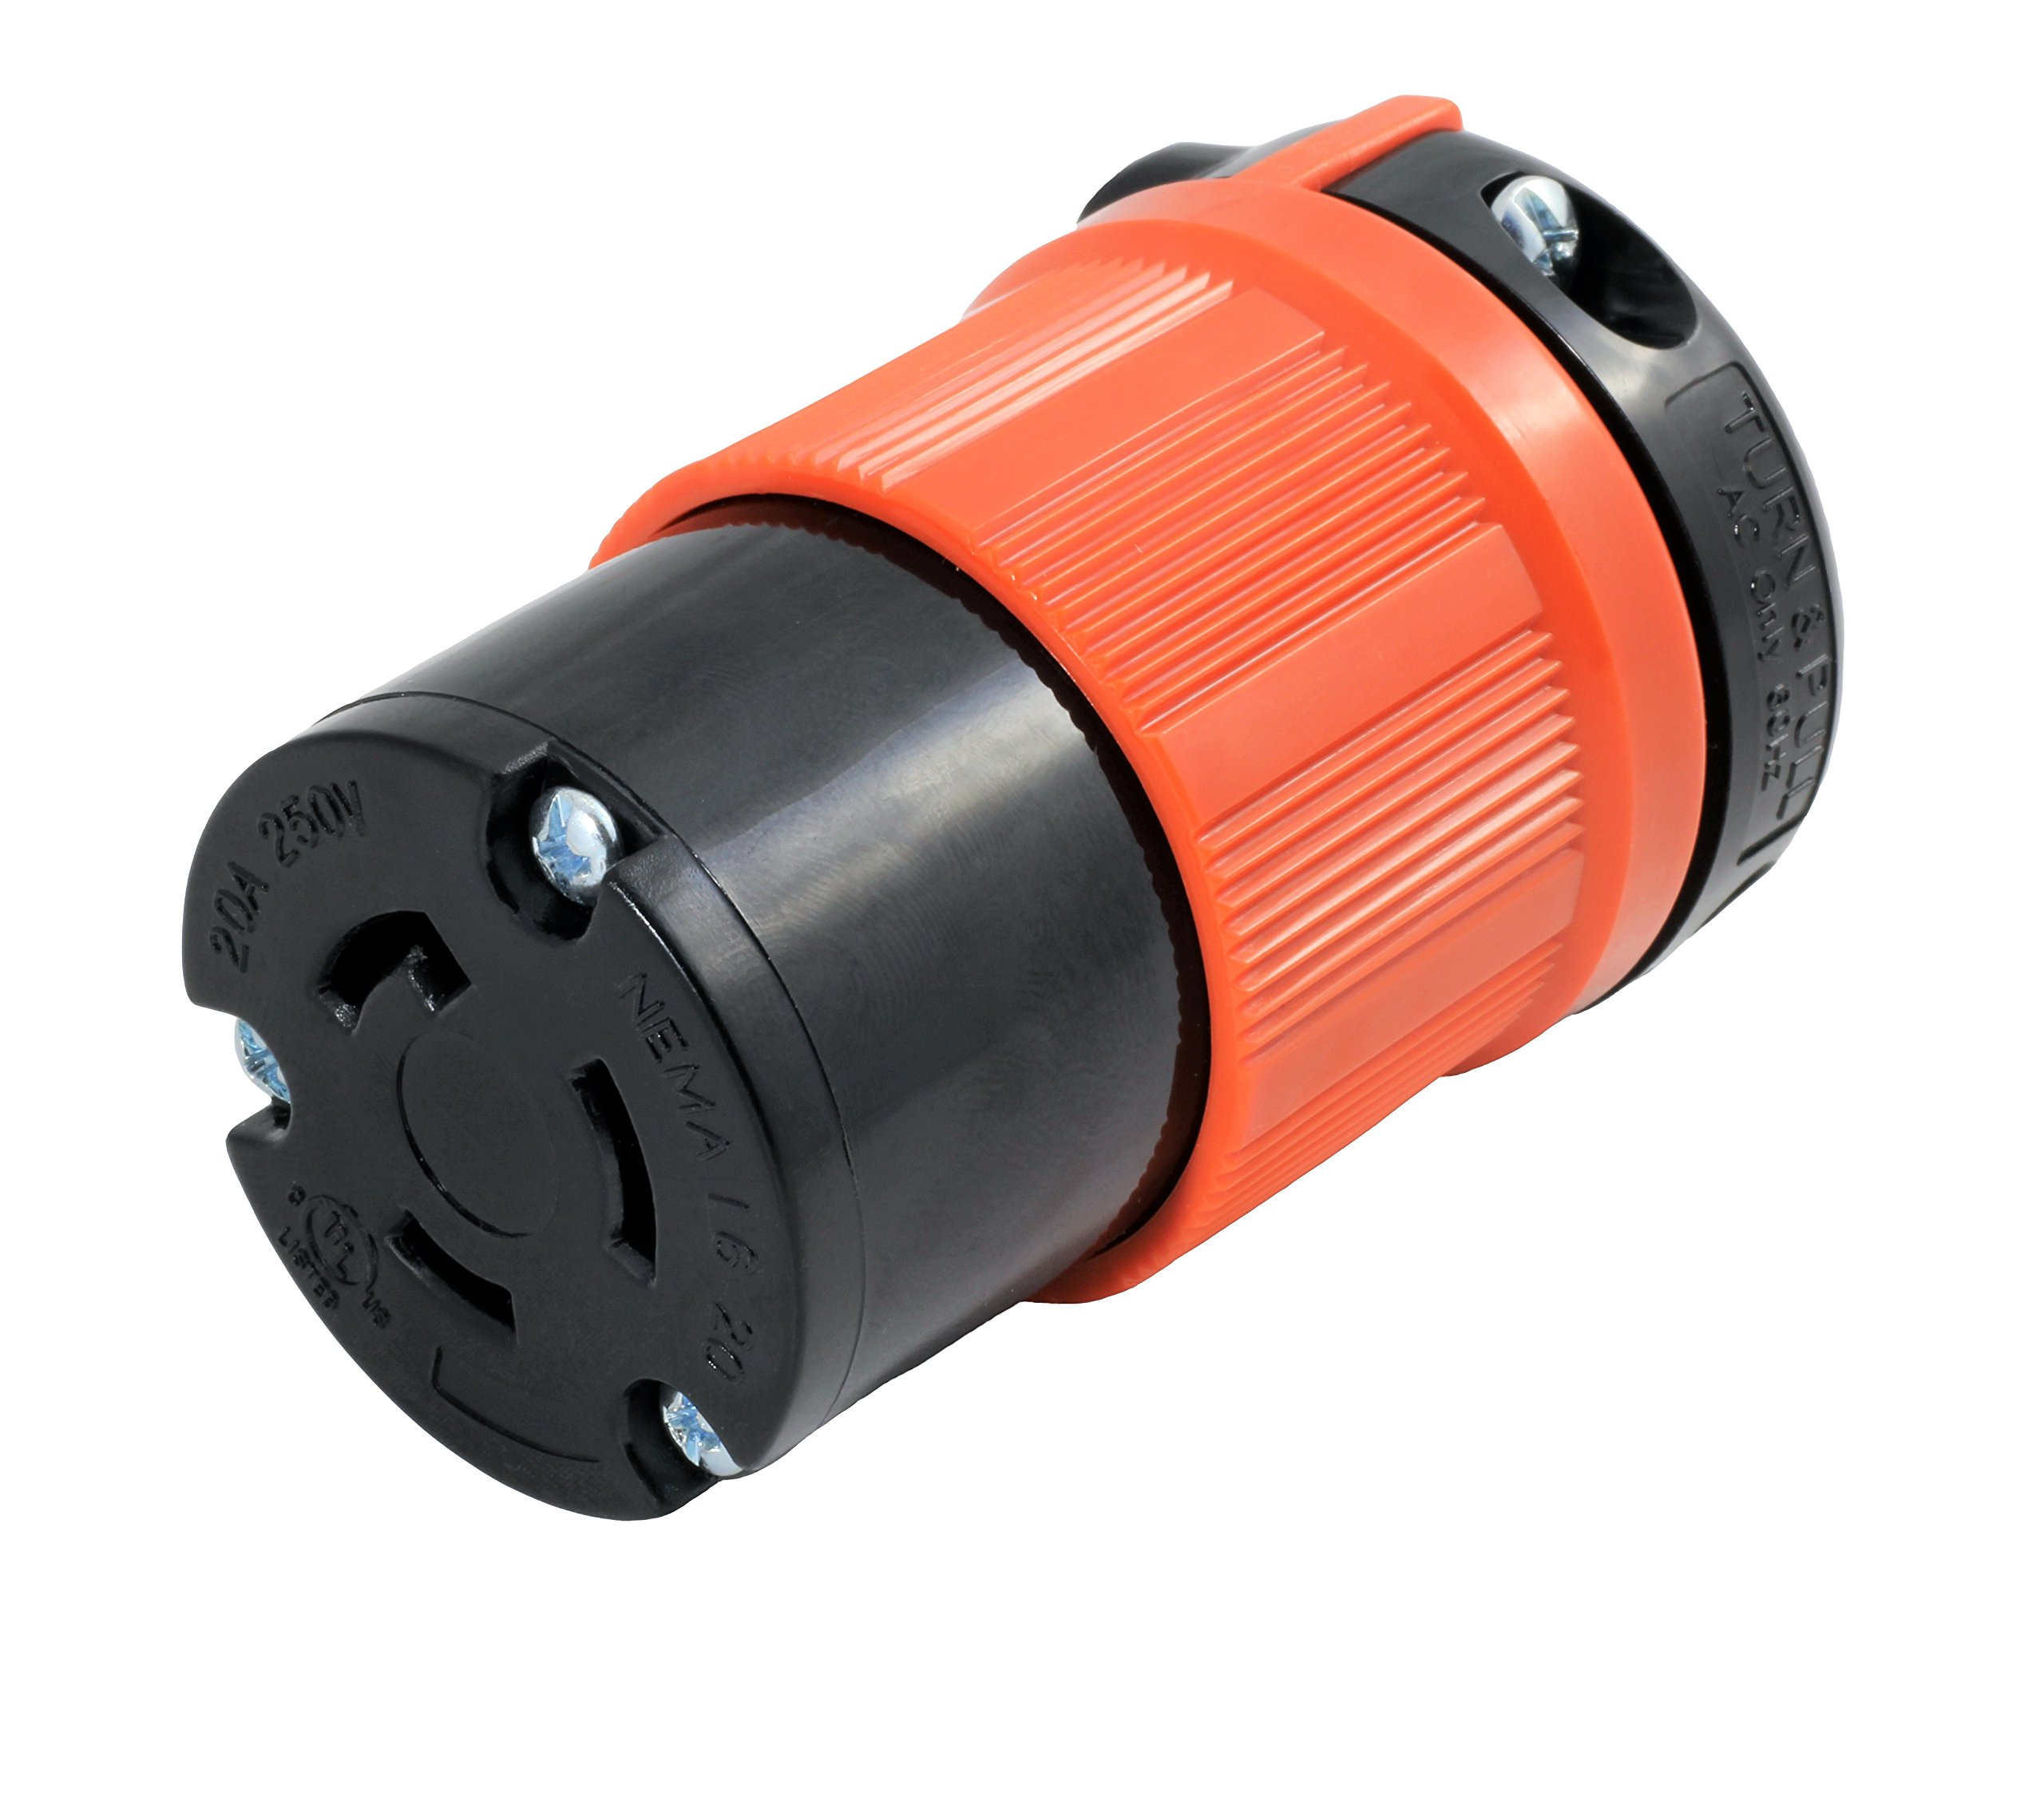 AC WORKS [ASL620R] NEMA L6-20R 20Amp 250Volt 3 Prong Locking Female Connector With UL, C-UL Approval